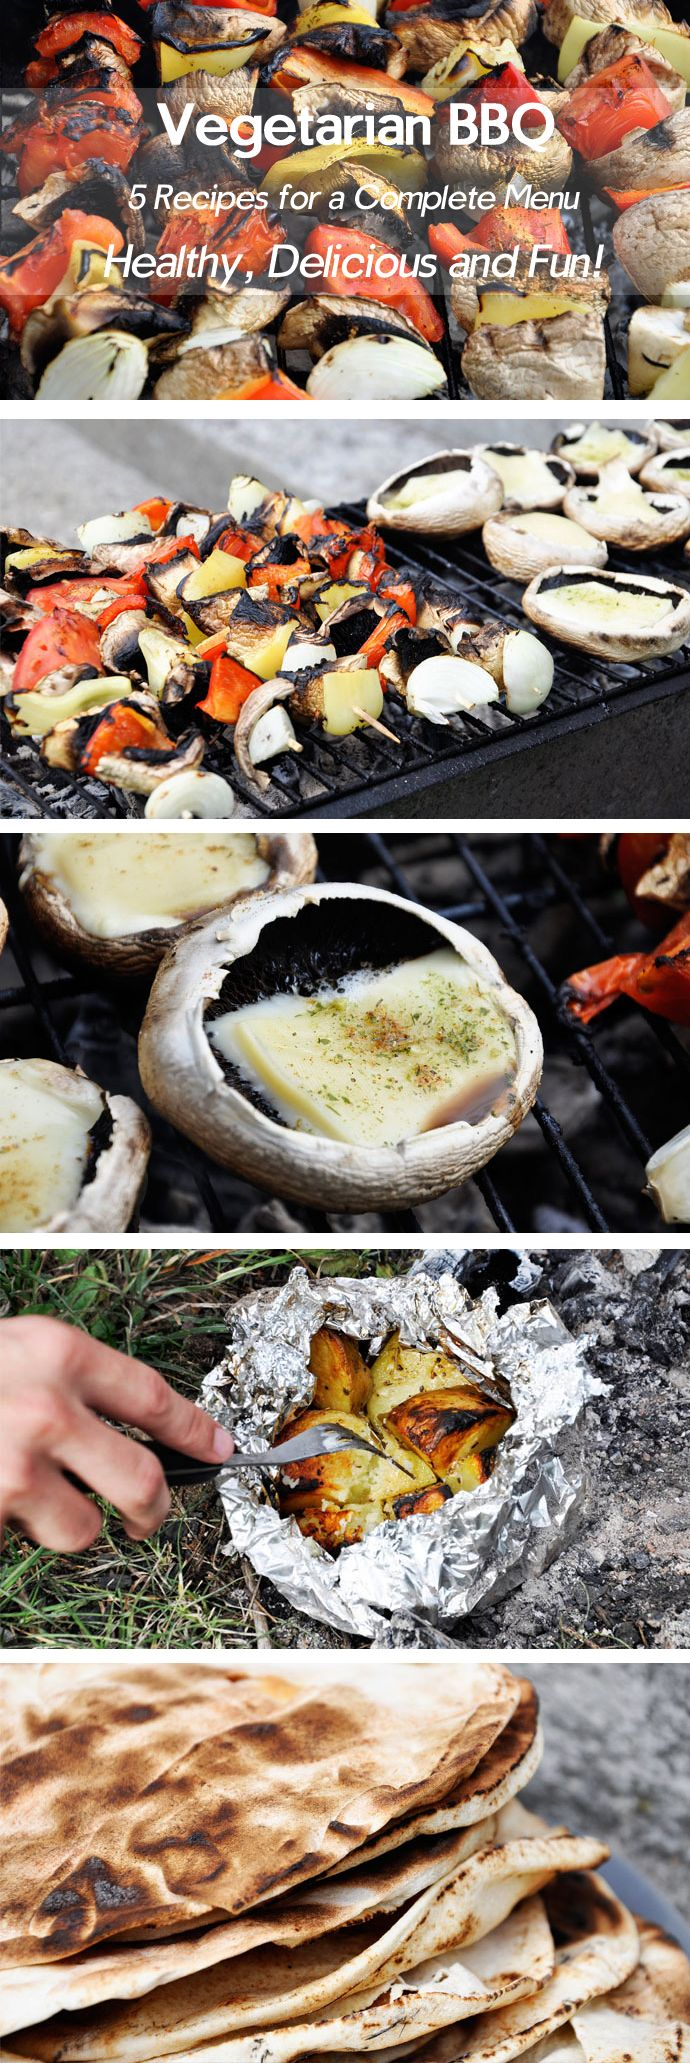 Here are some great vegetarian BBQ recipes: veggie skewers, grilled mushrooms, potatoes cooked in ember and crispy pita bread.   gourmandelle.com   #barbeque